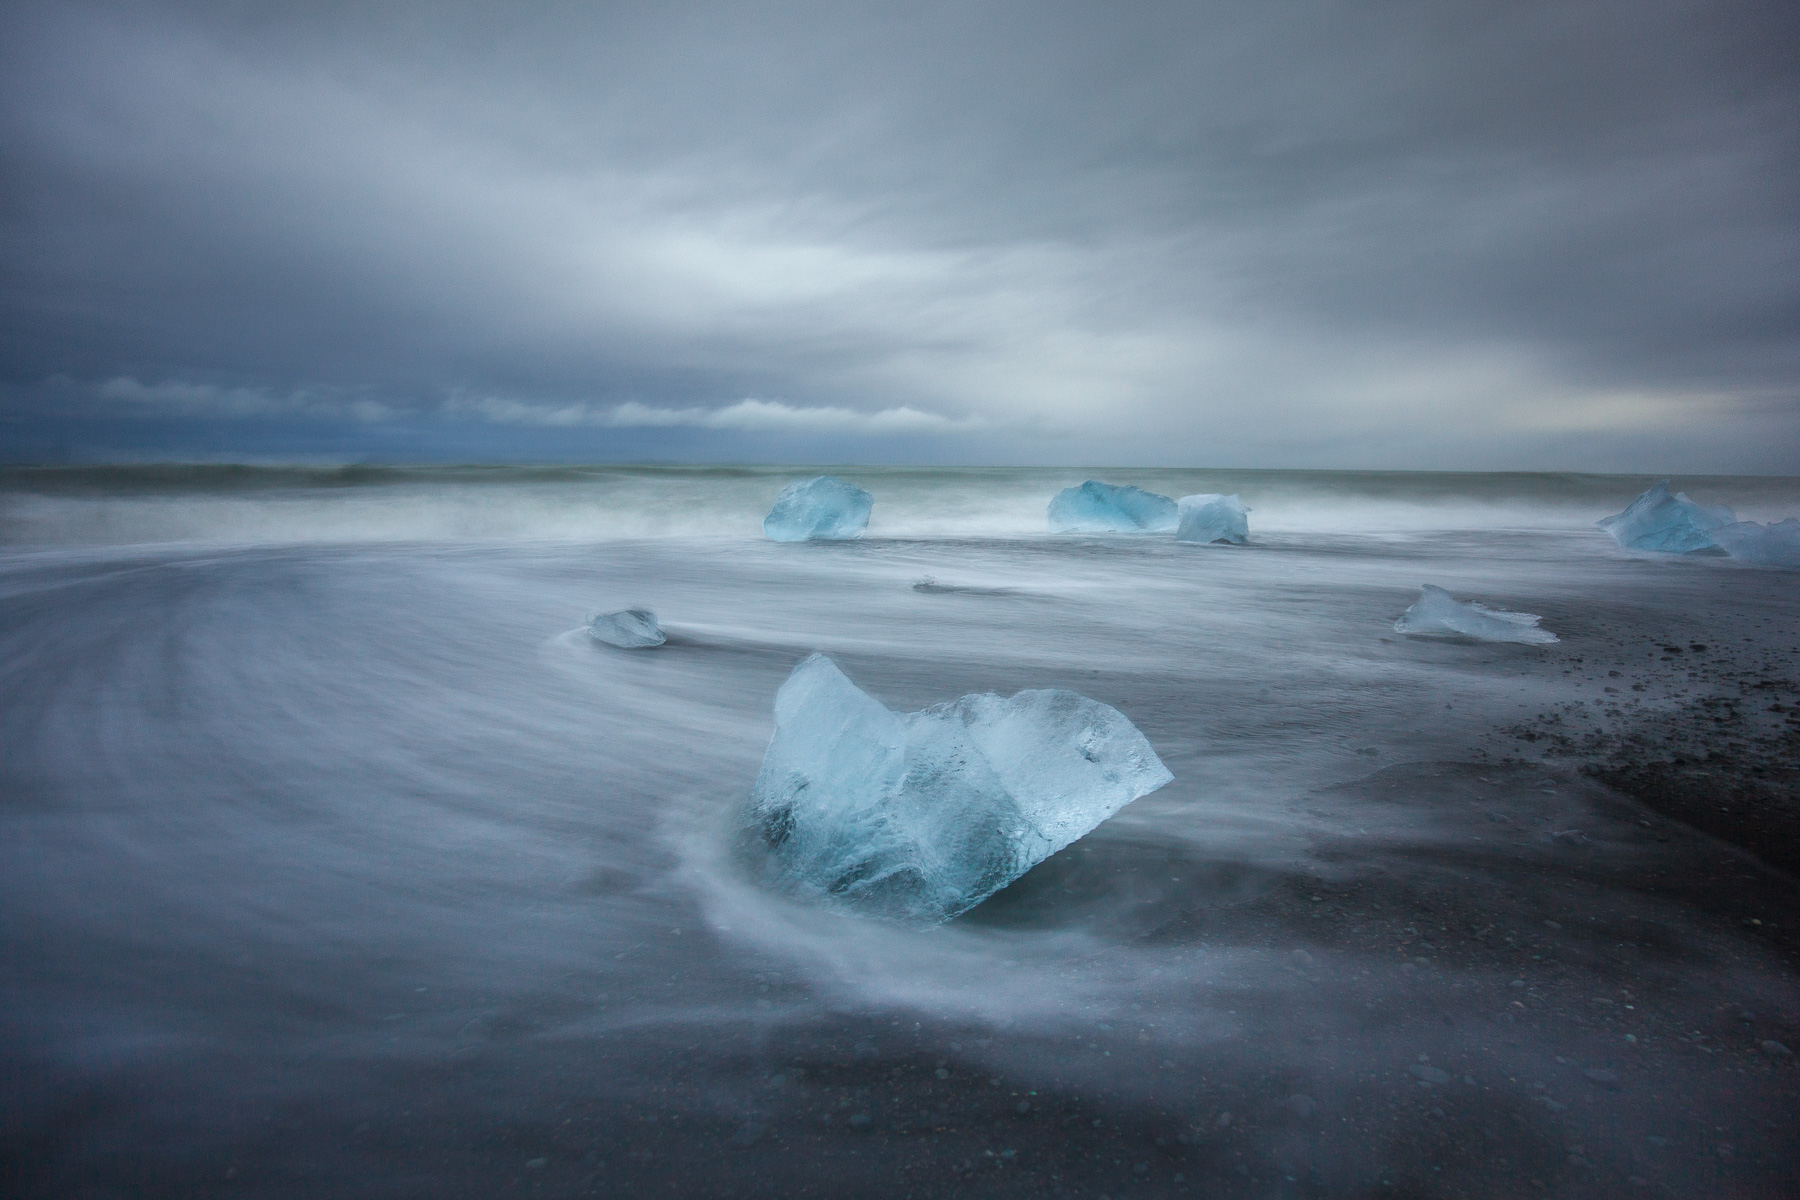 Long exposure photo of water moving passed icebergs on the beach in Jokulsarlon, Iceland.